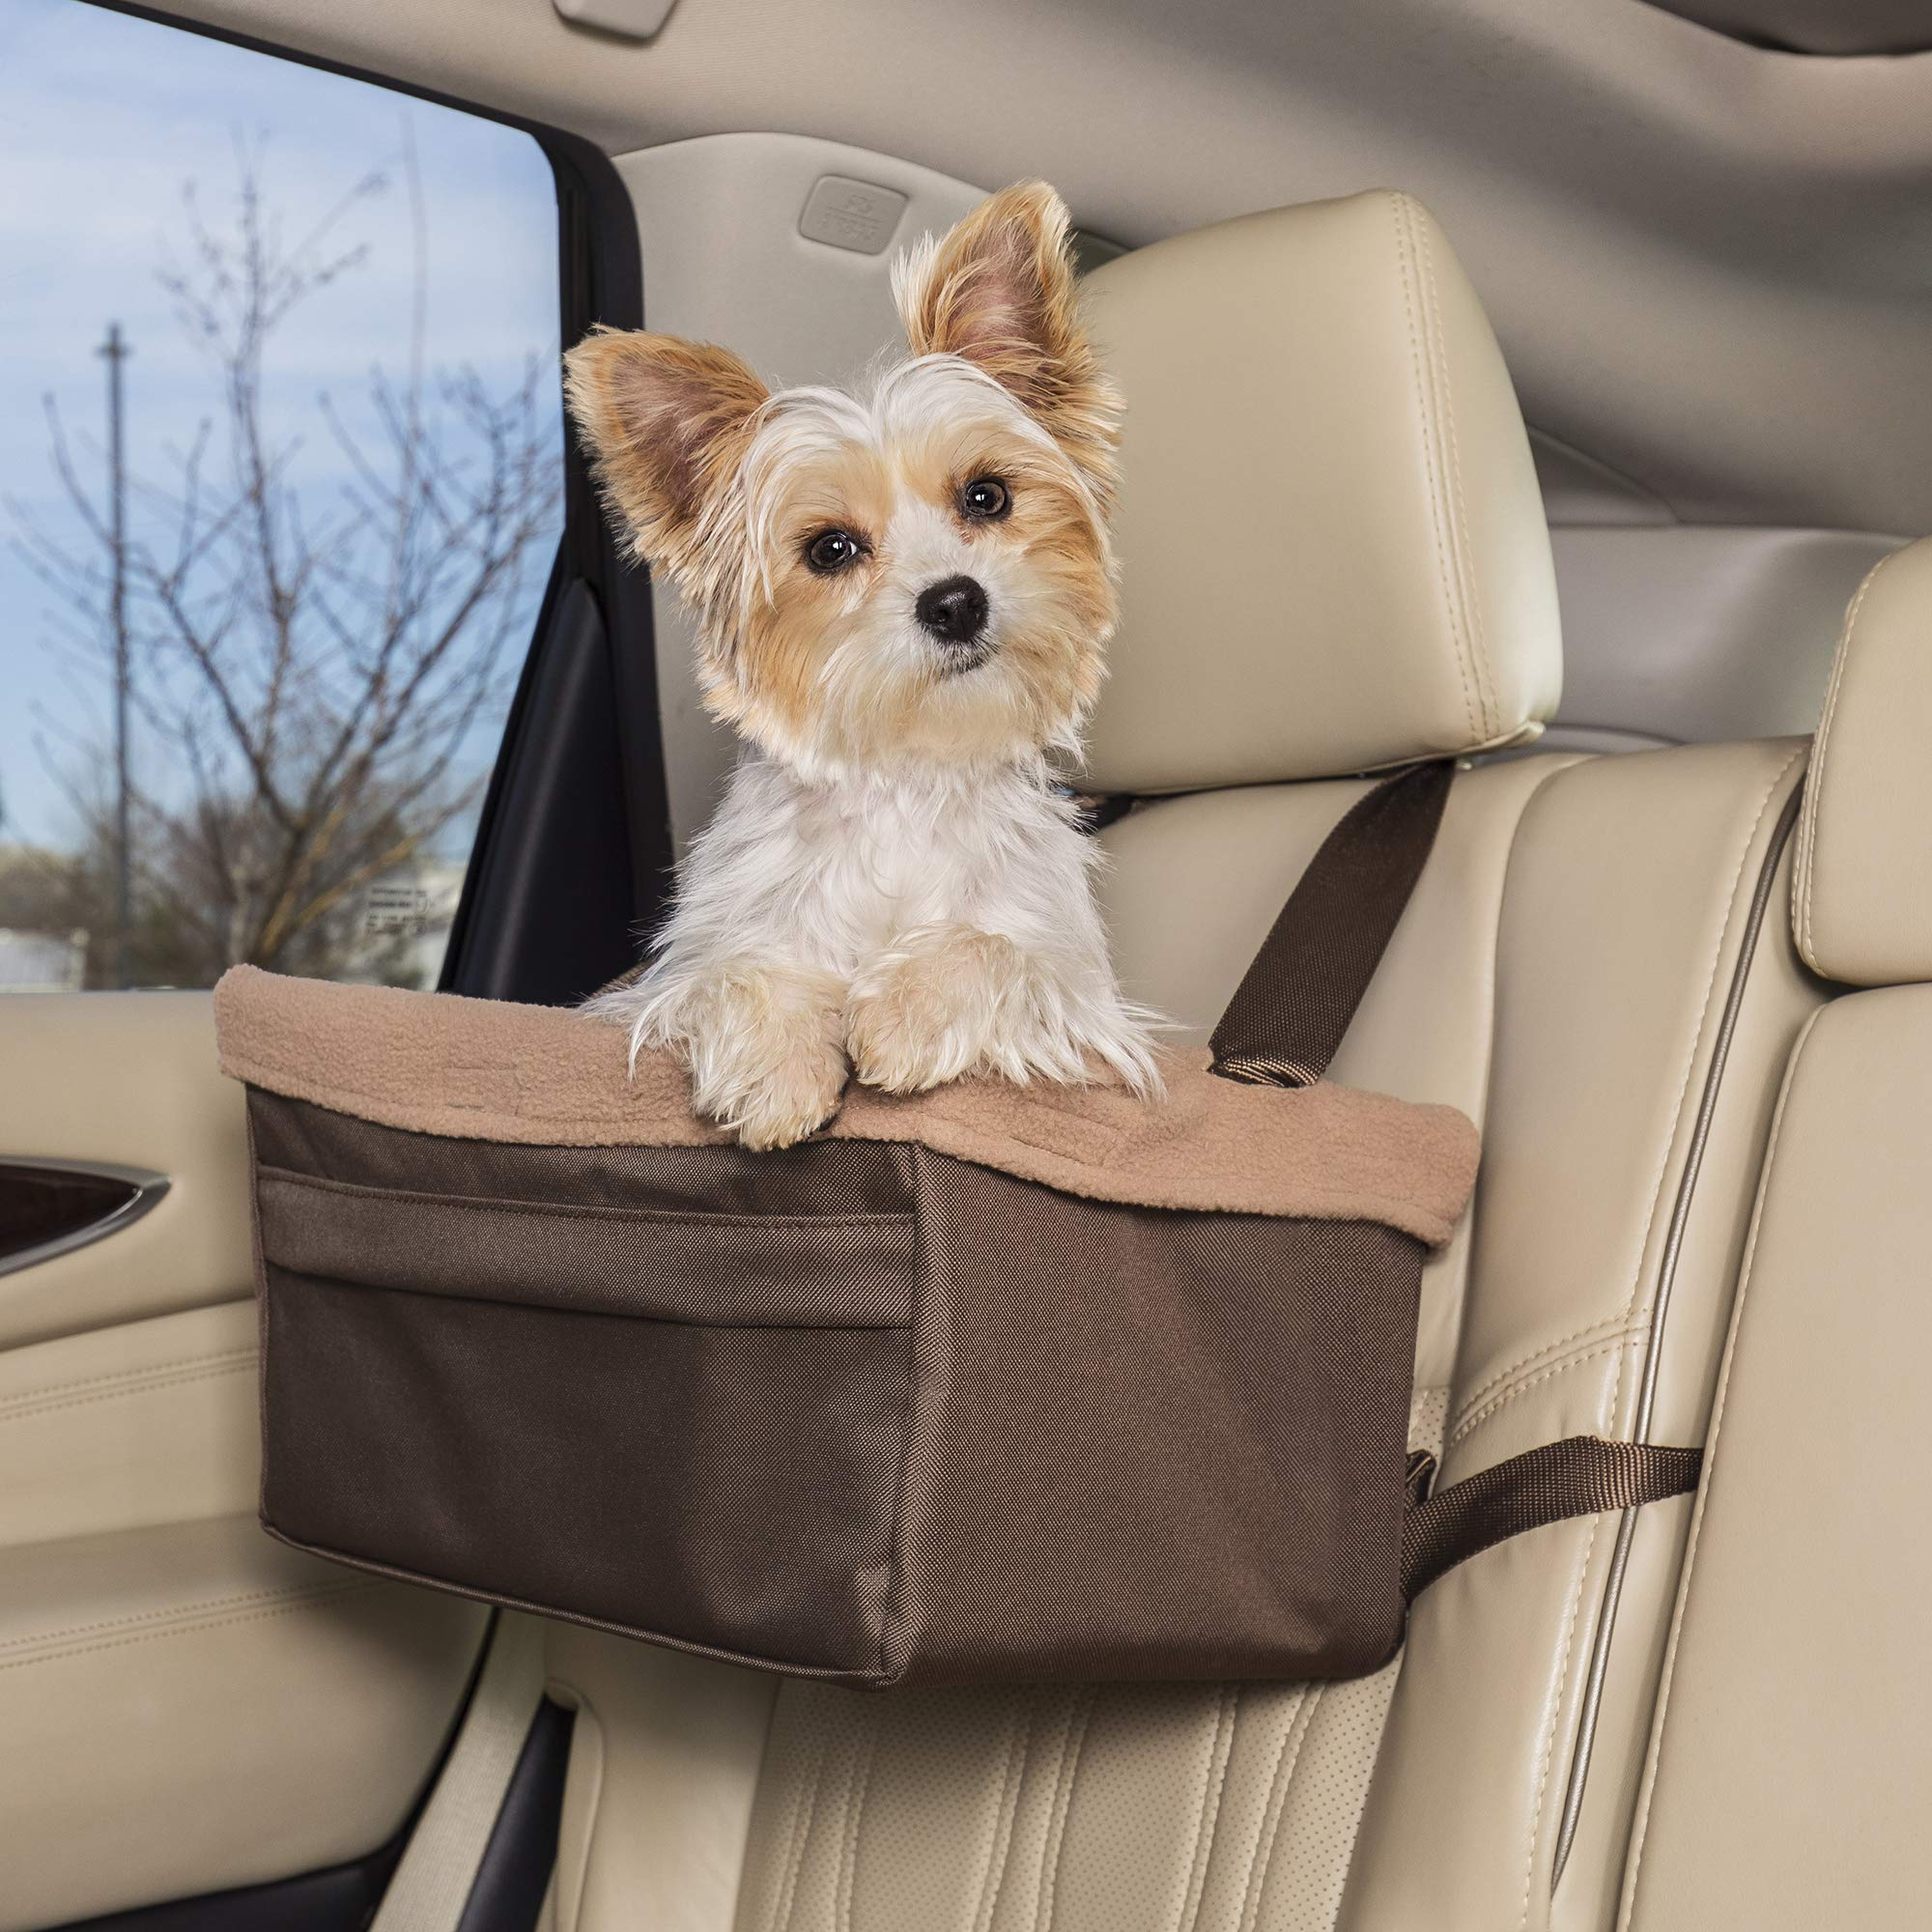 PetSafe Solvit Tagalong Pet Booster Seat, Extra Large Standard, Dog Booster Seat for Cars, Trucks and SUVs by PetSafe